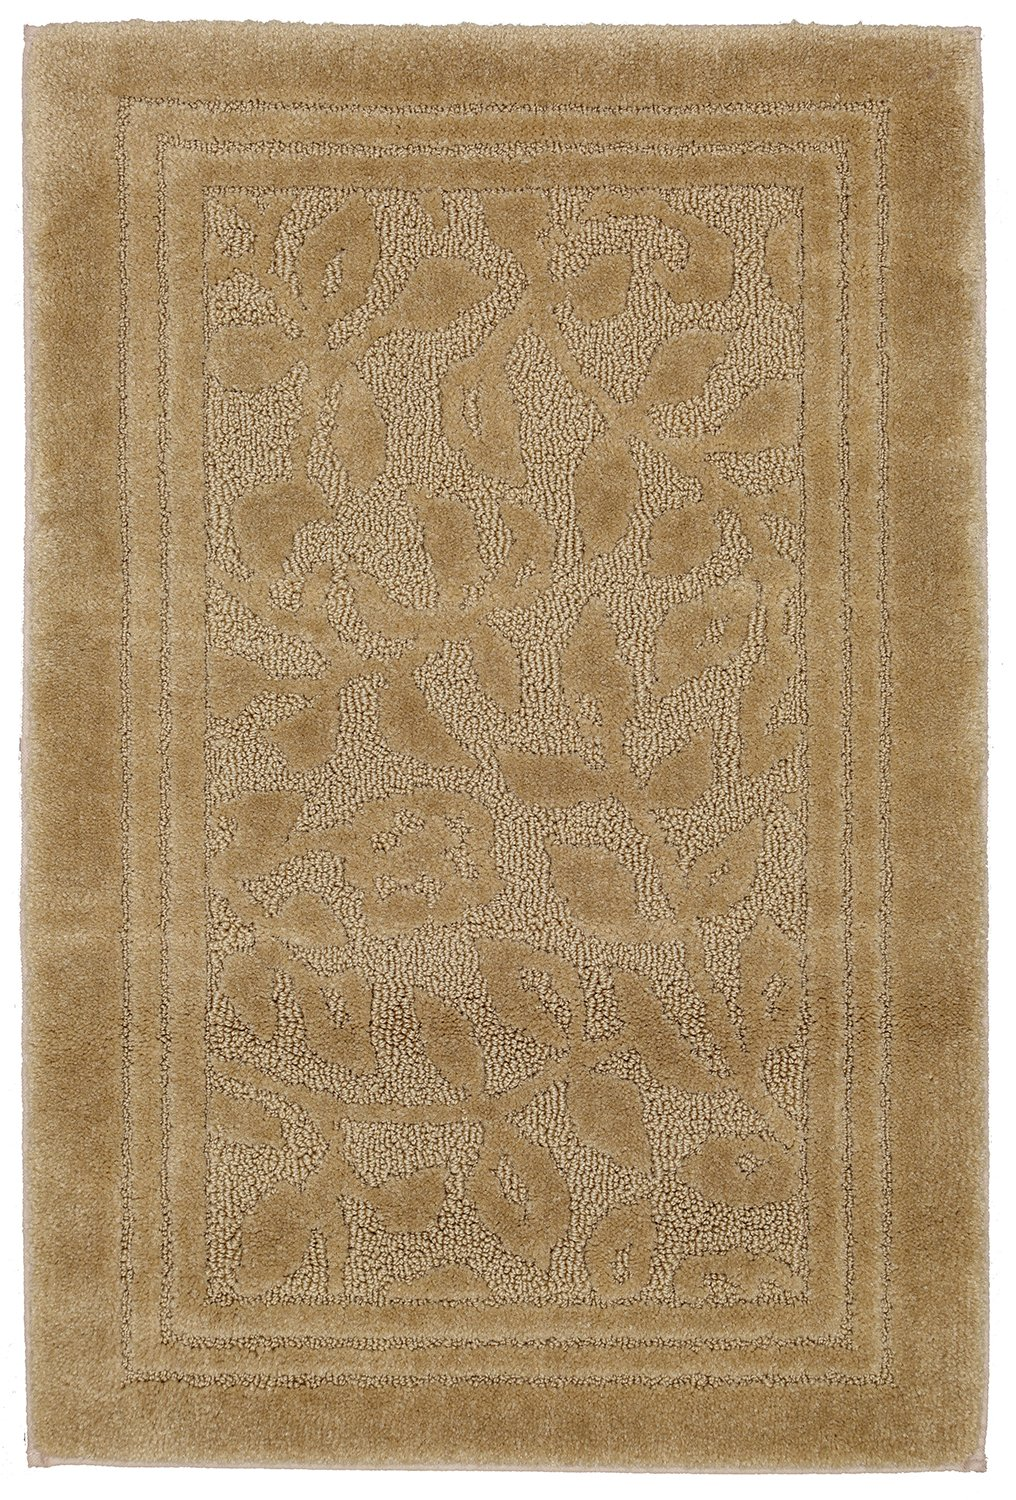 Mohawk Home Wellington Deep Sand Vine Scroll High Low Plush Bath Rug, 30x50, Tan by Mohawk Home (Image #1)